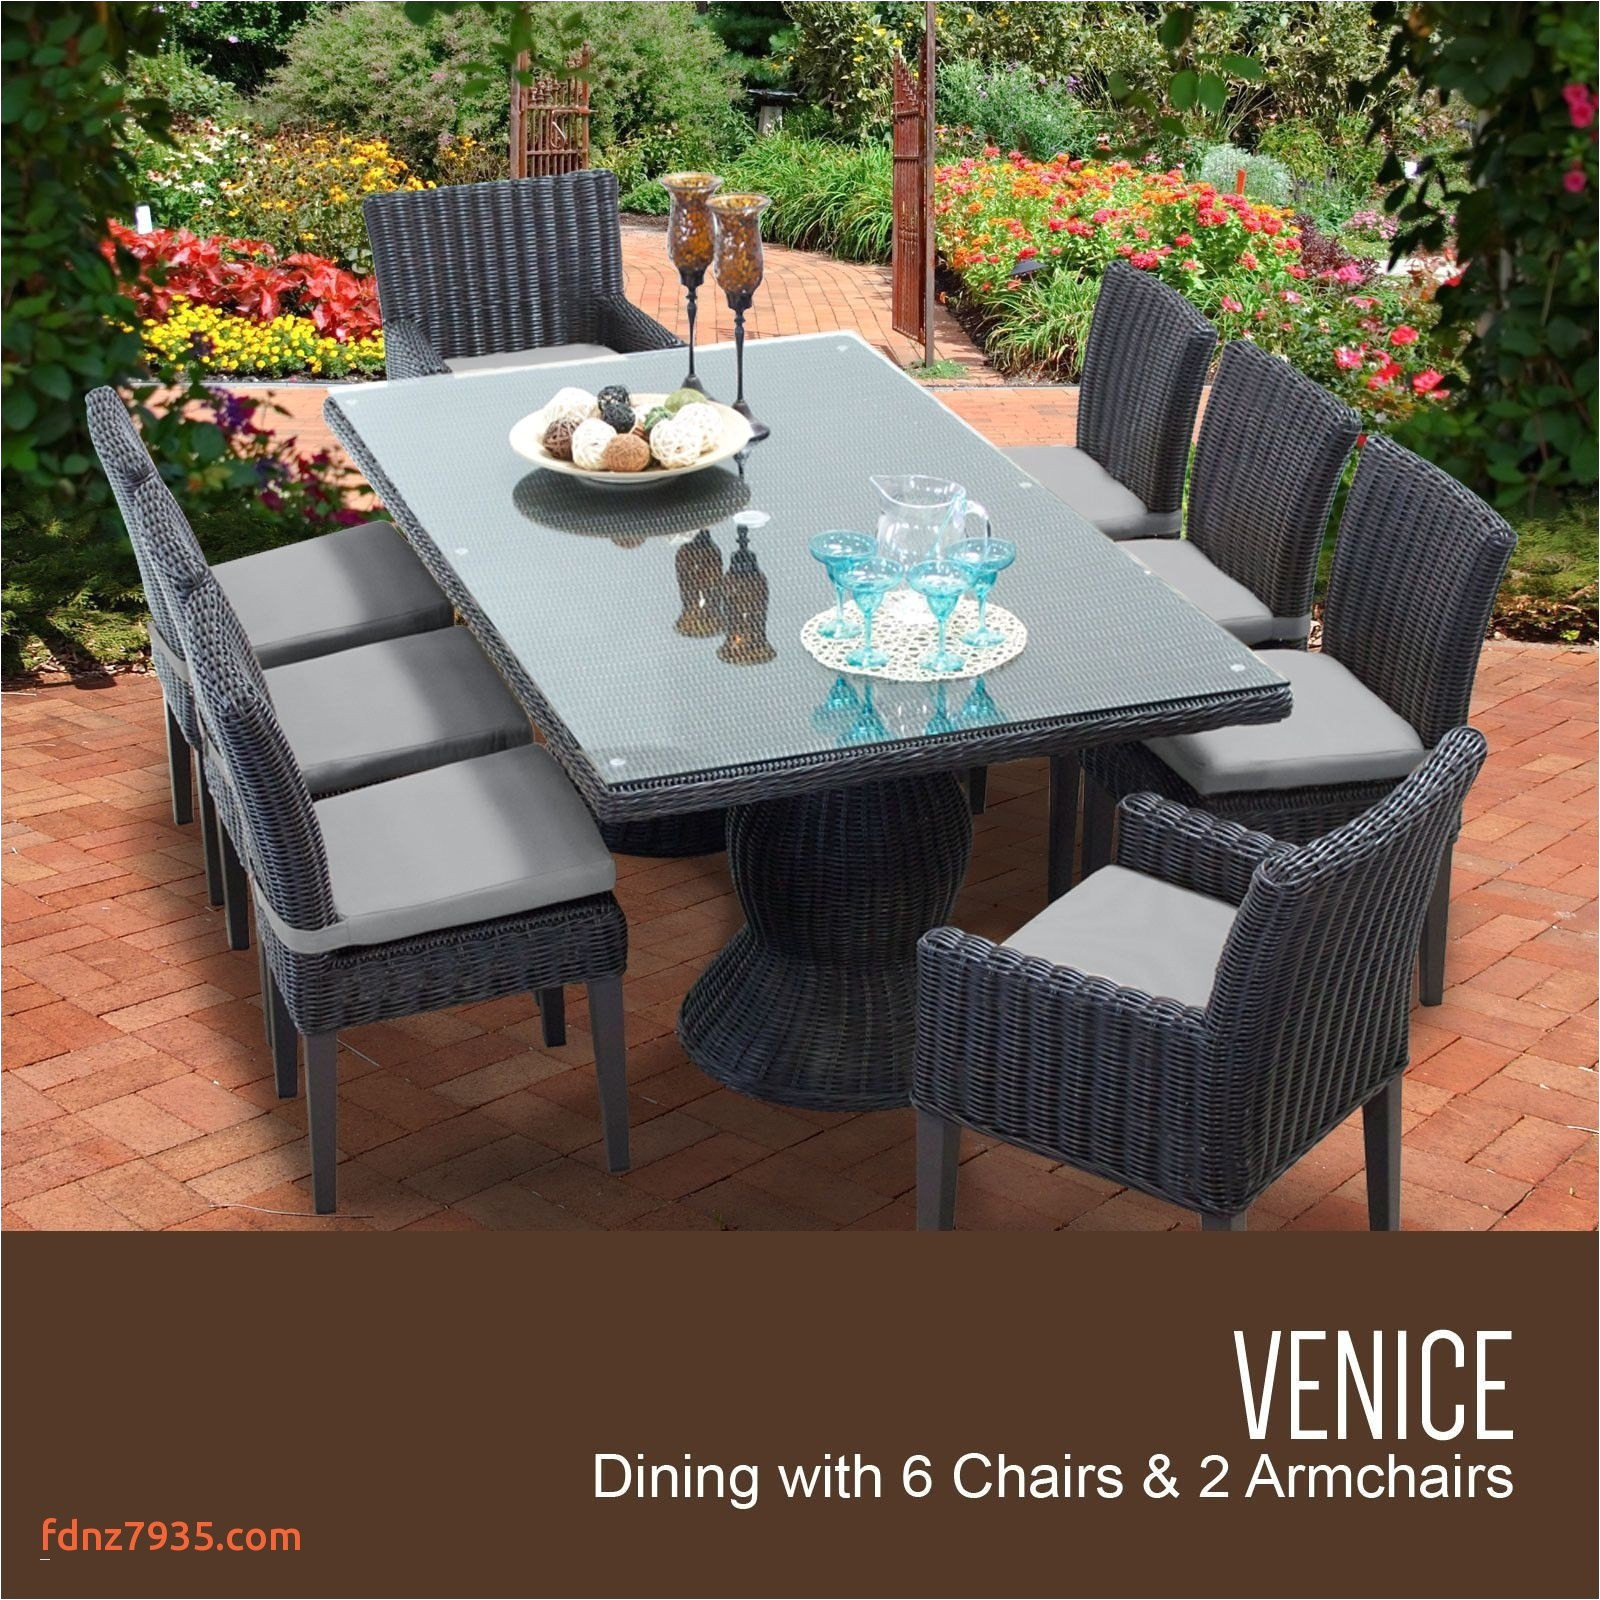 outdoor dining tables fabulous patio dining table lovely wicker outdoor sofa 0d patio chairs sale